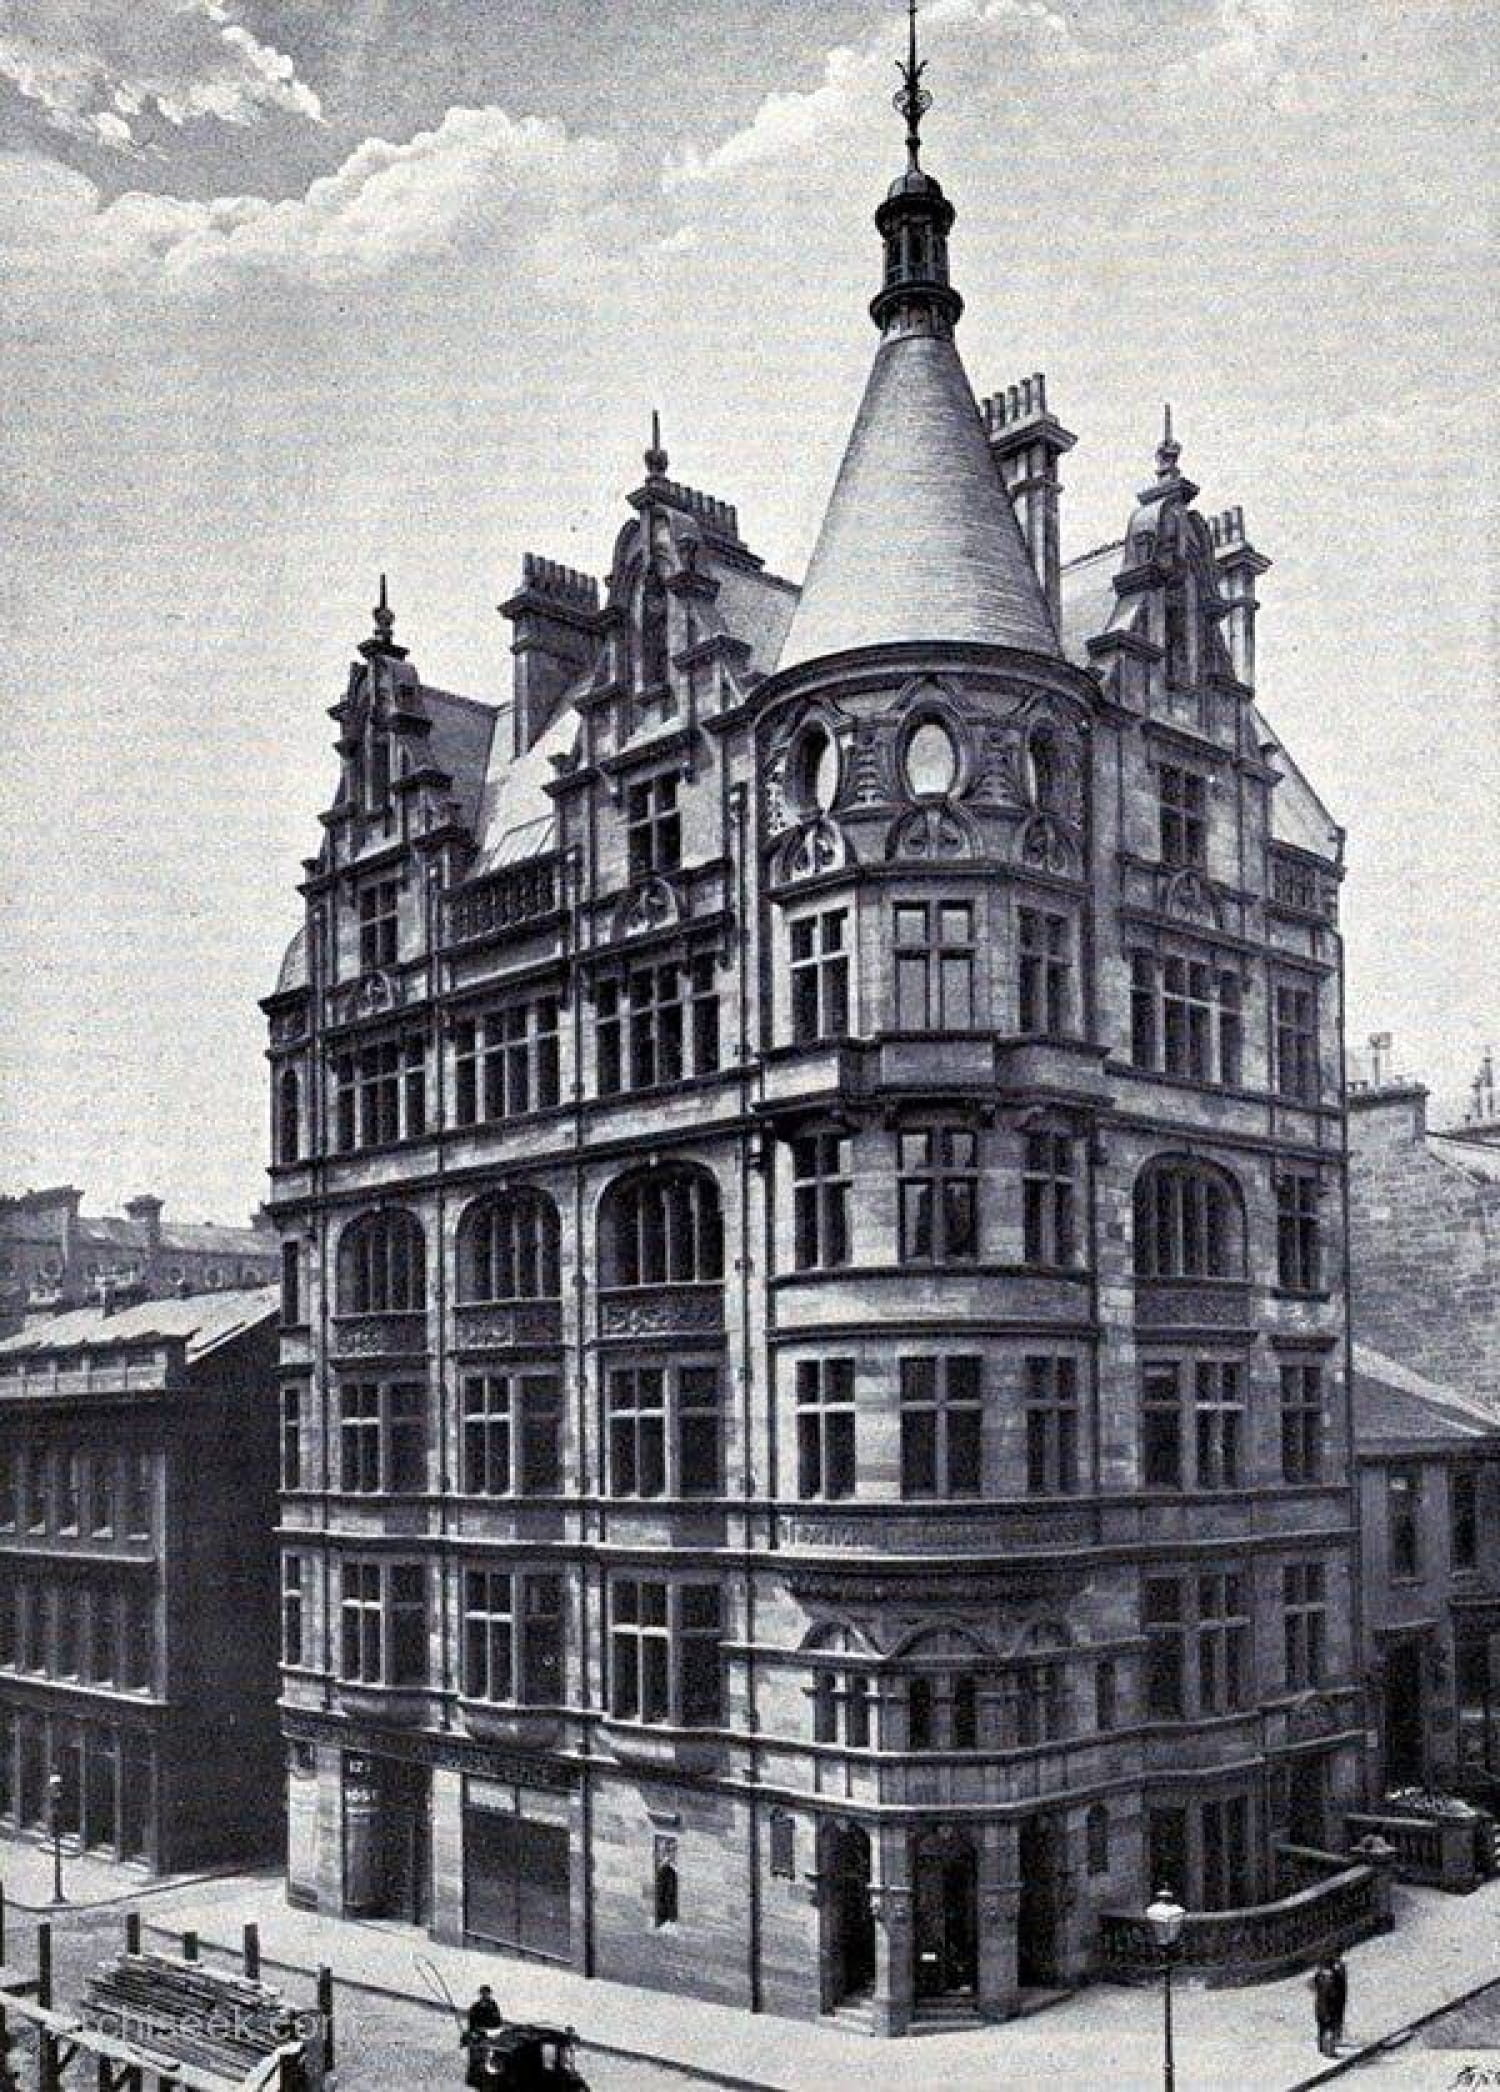 The MacBrayne offices, bottom left, and the magnificent Norwich Union Insurance building (Picture: Archiseek)